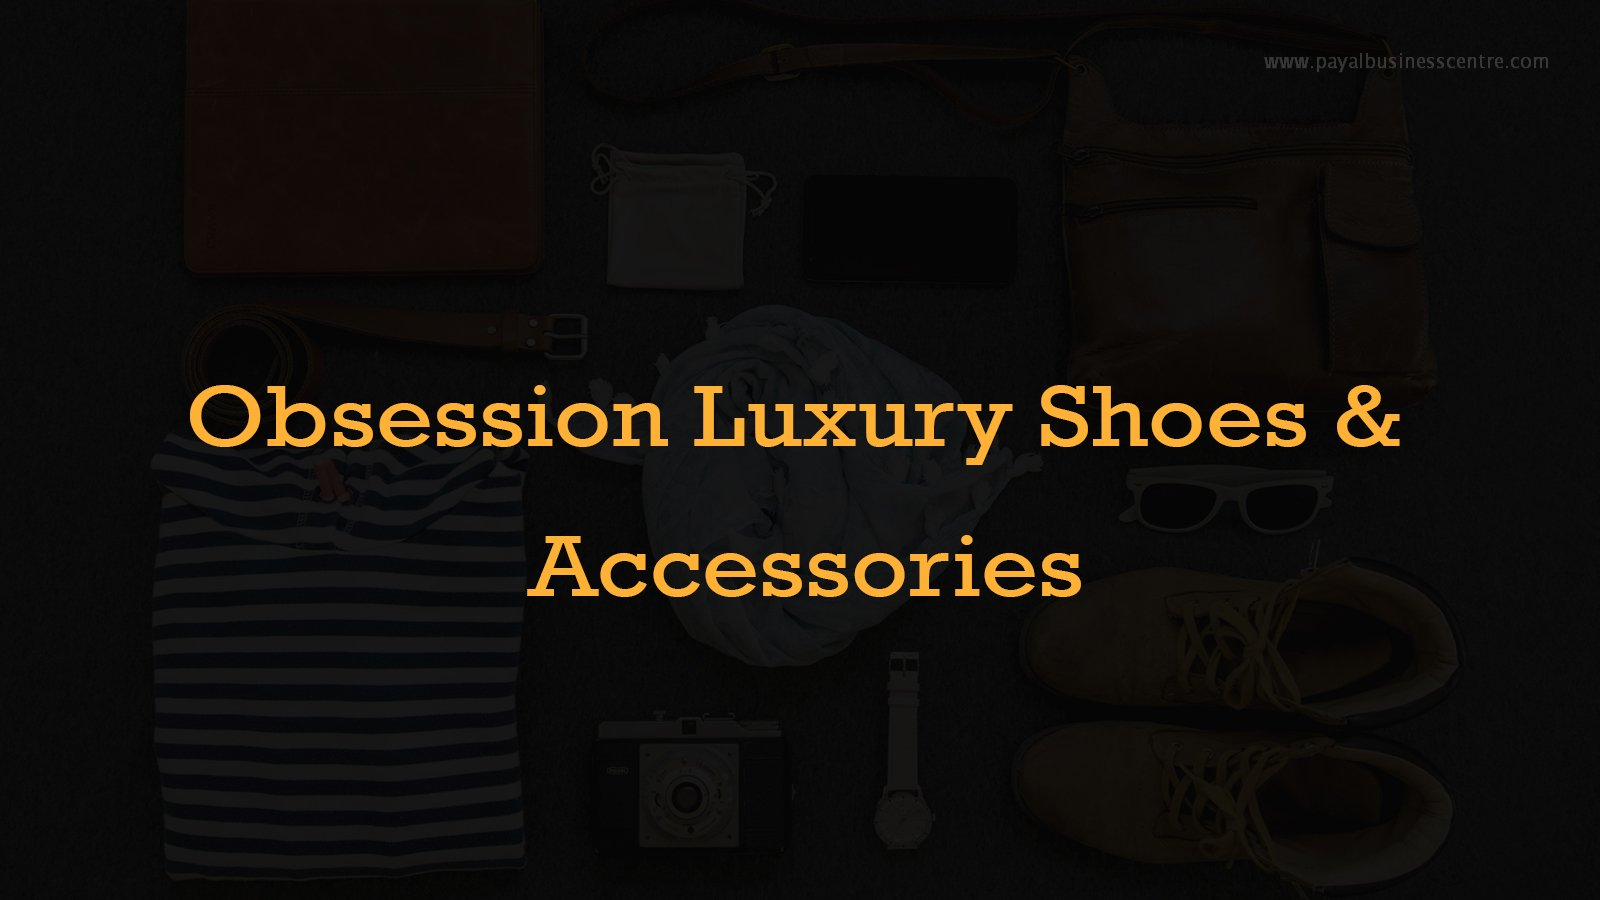 Obsession Luxury Shoes & Accessories